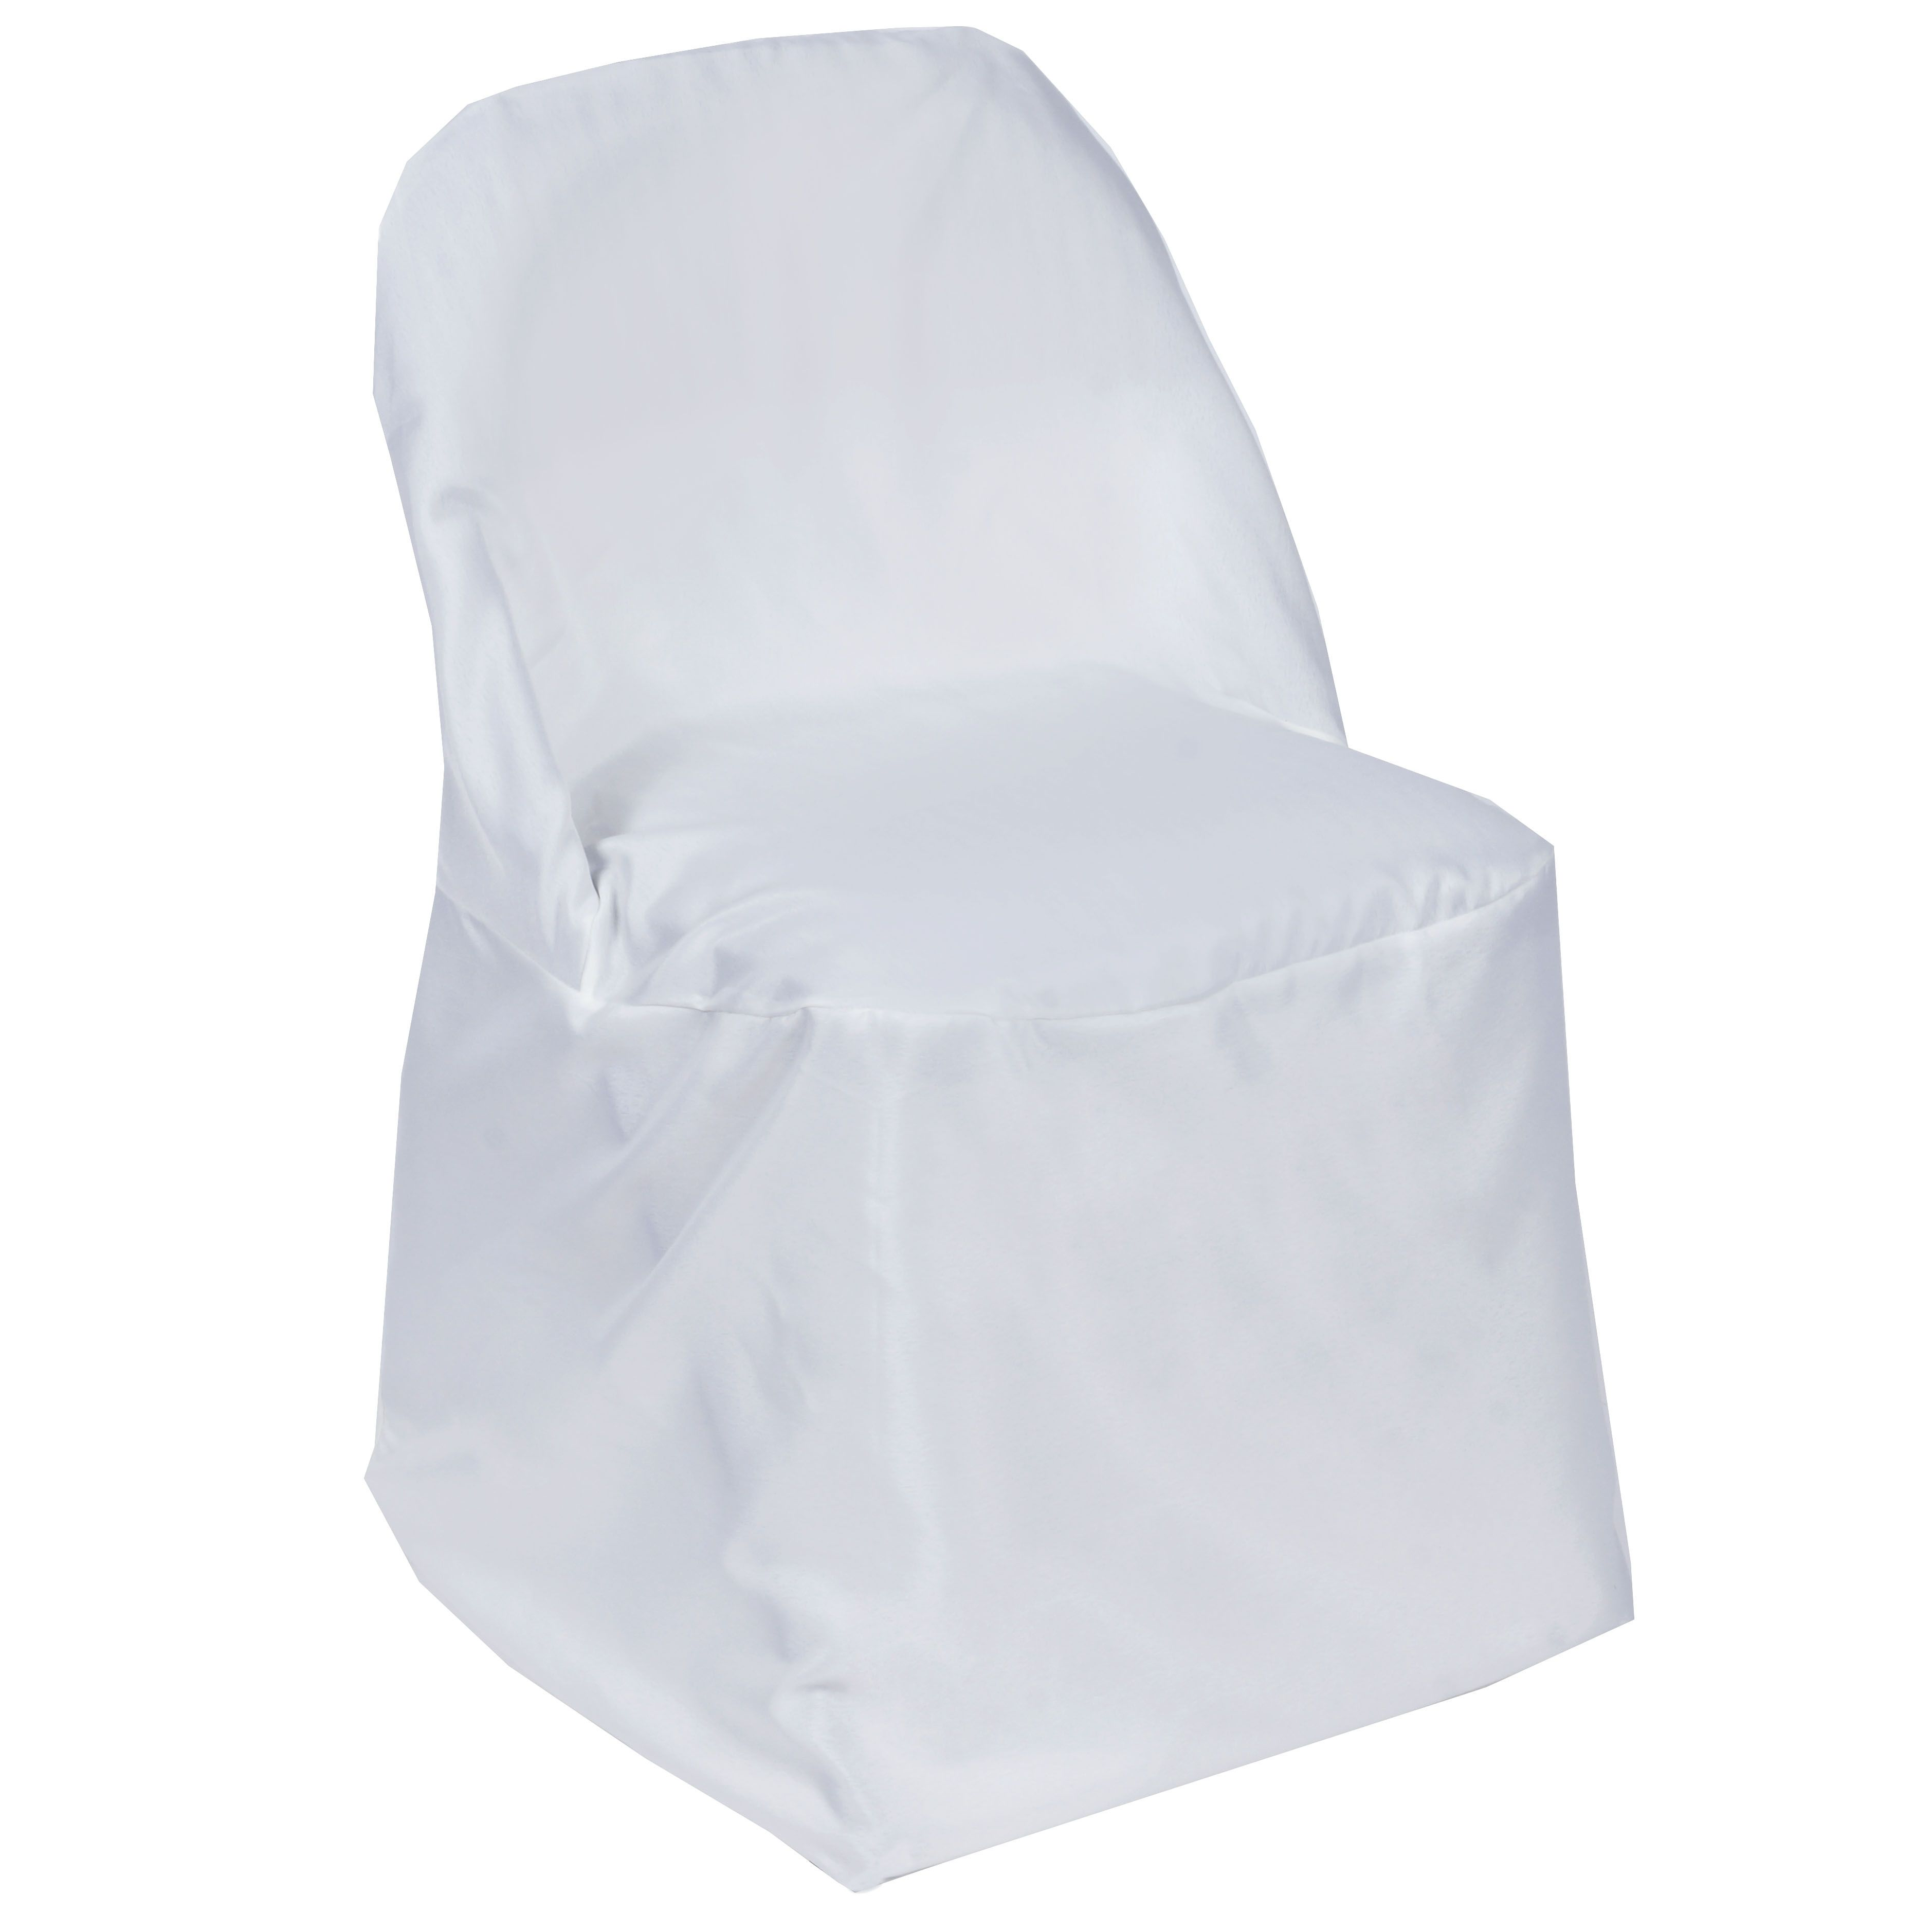 White Polyester Folding Chair Covers